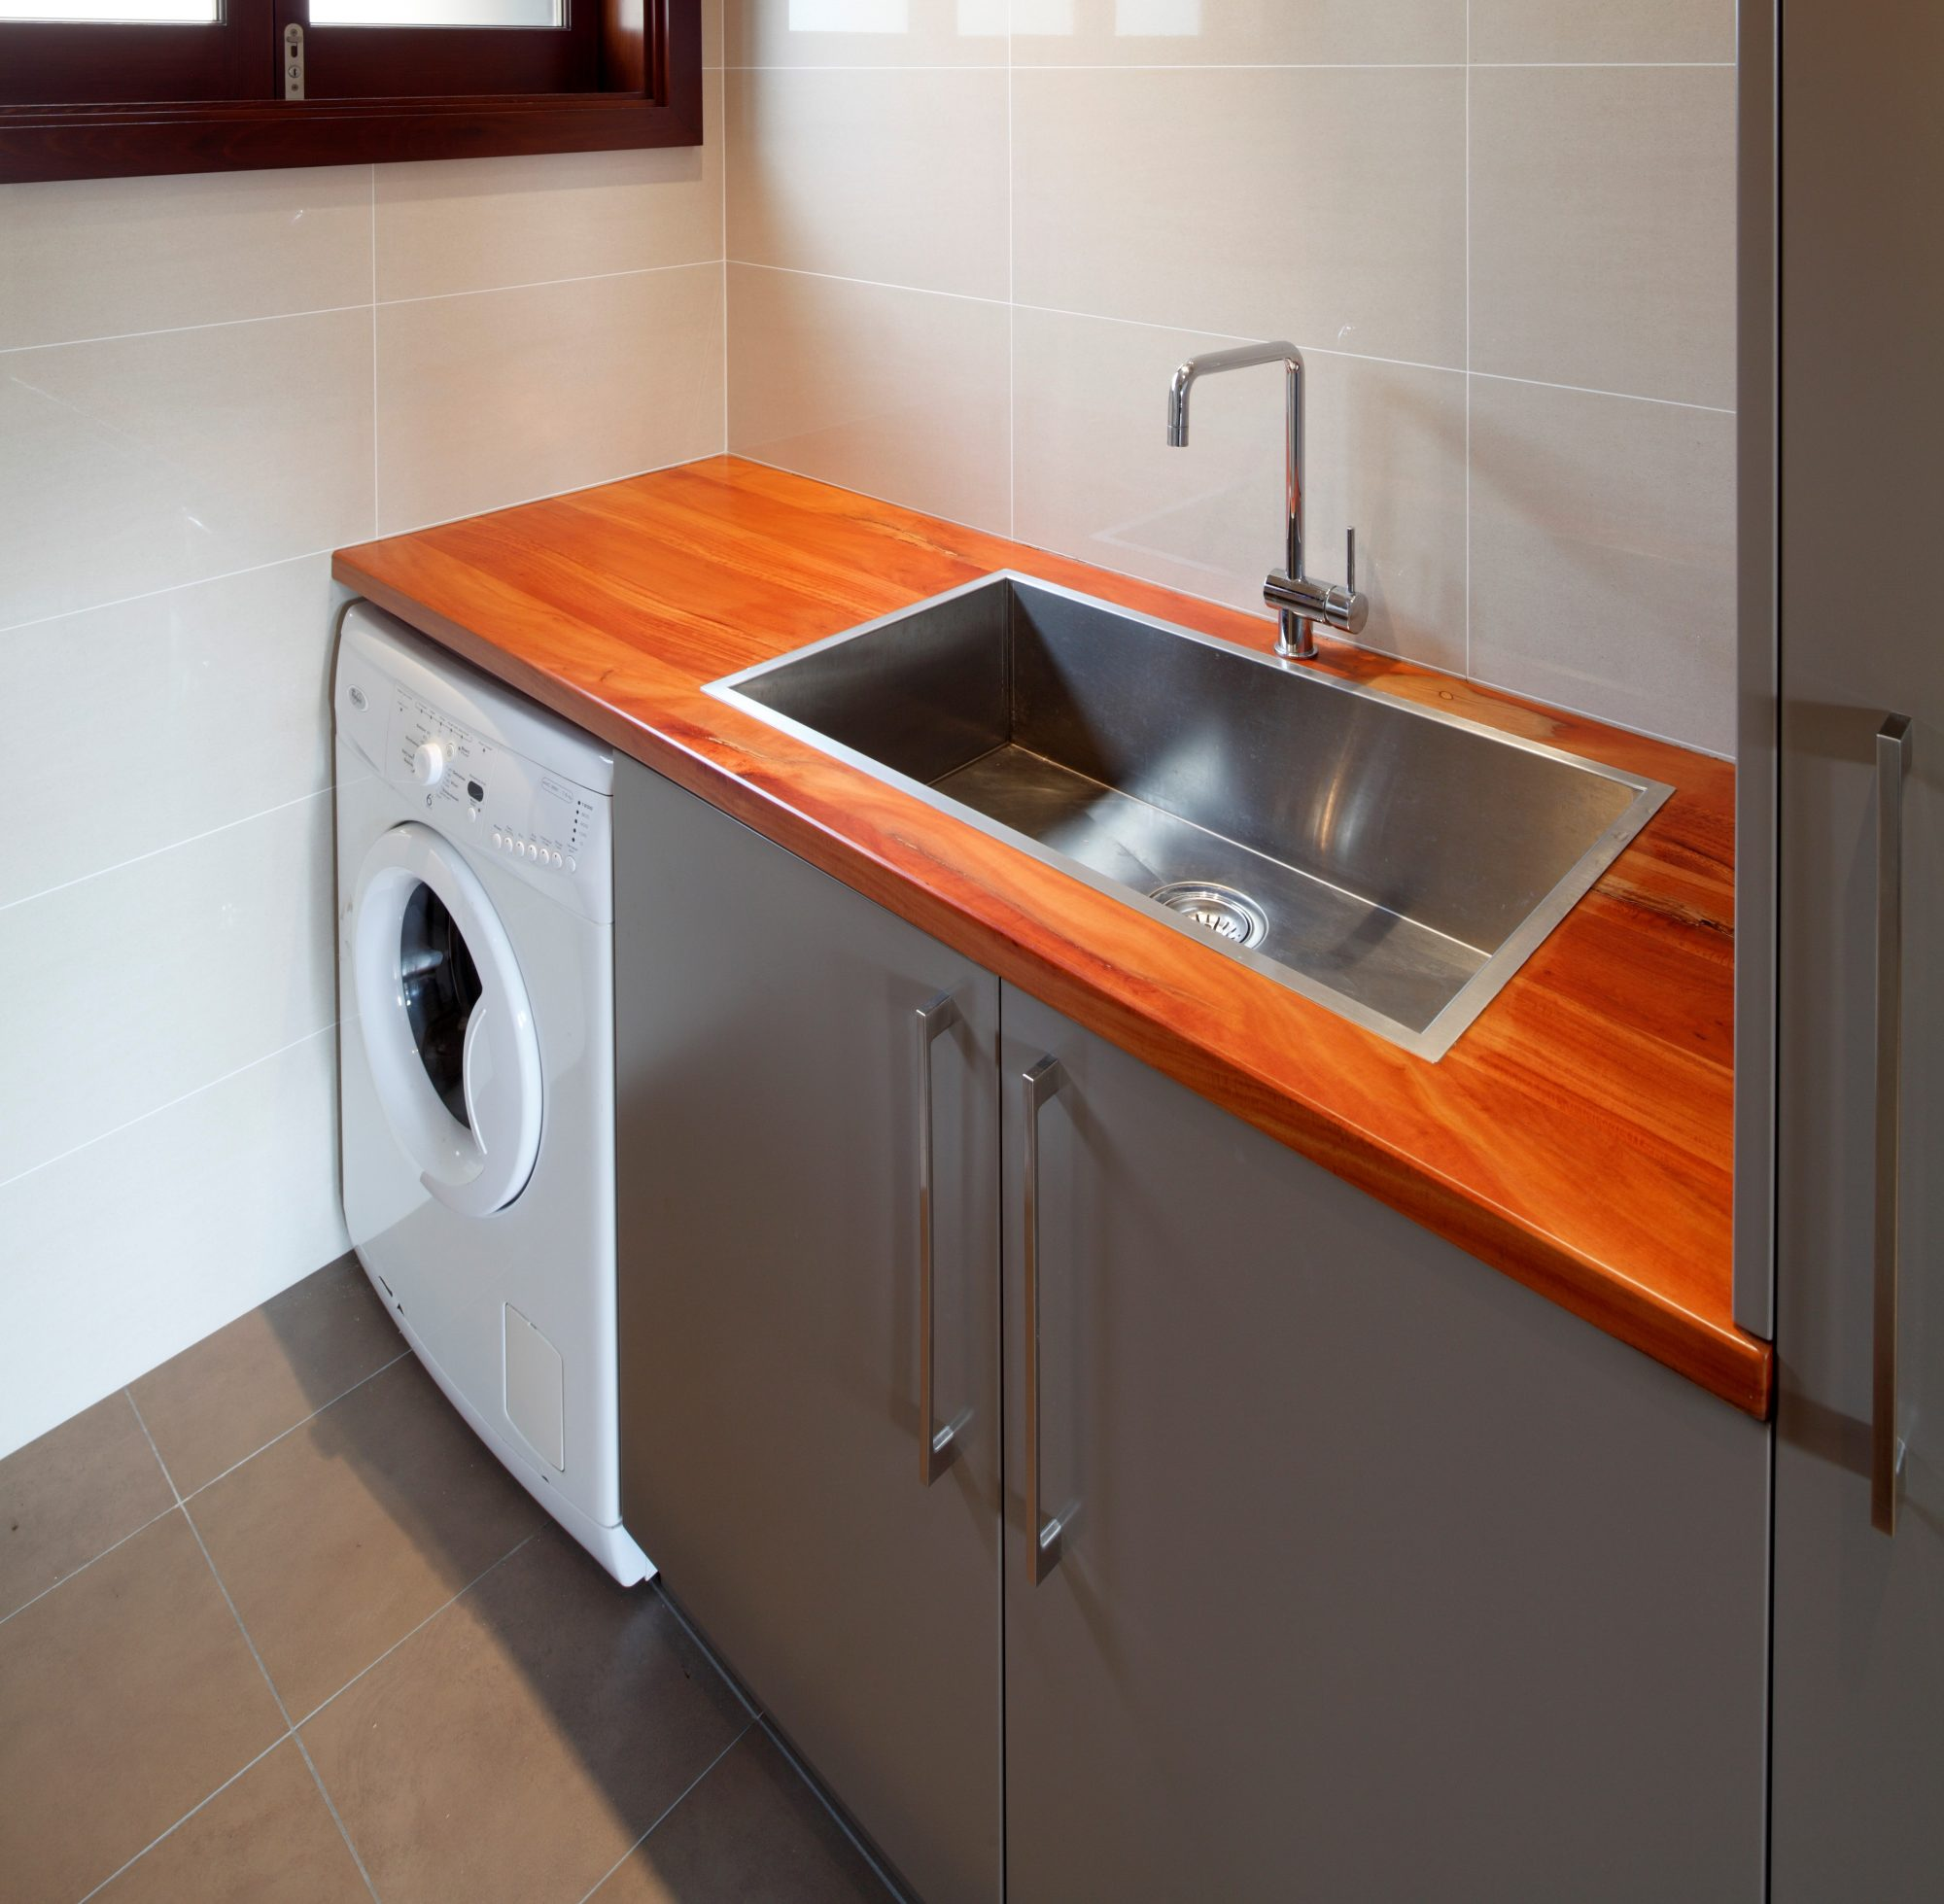 Coat and protect kitchen timber bench tops with Sikkens timber stains